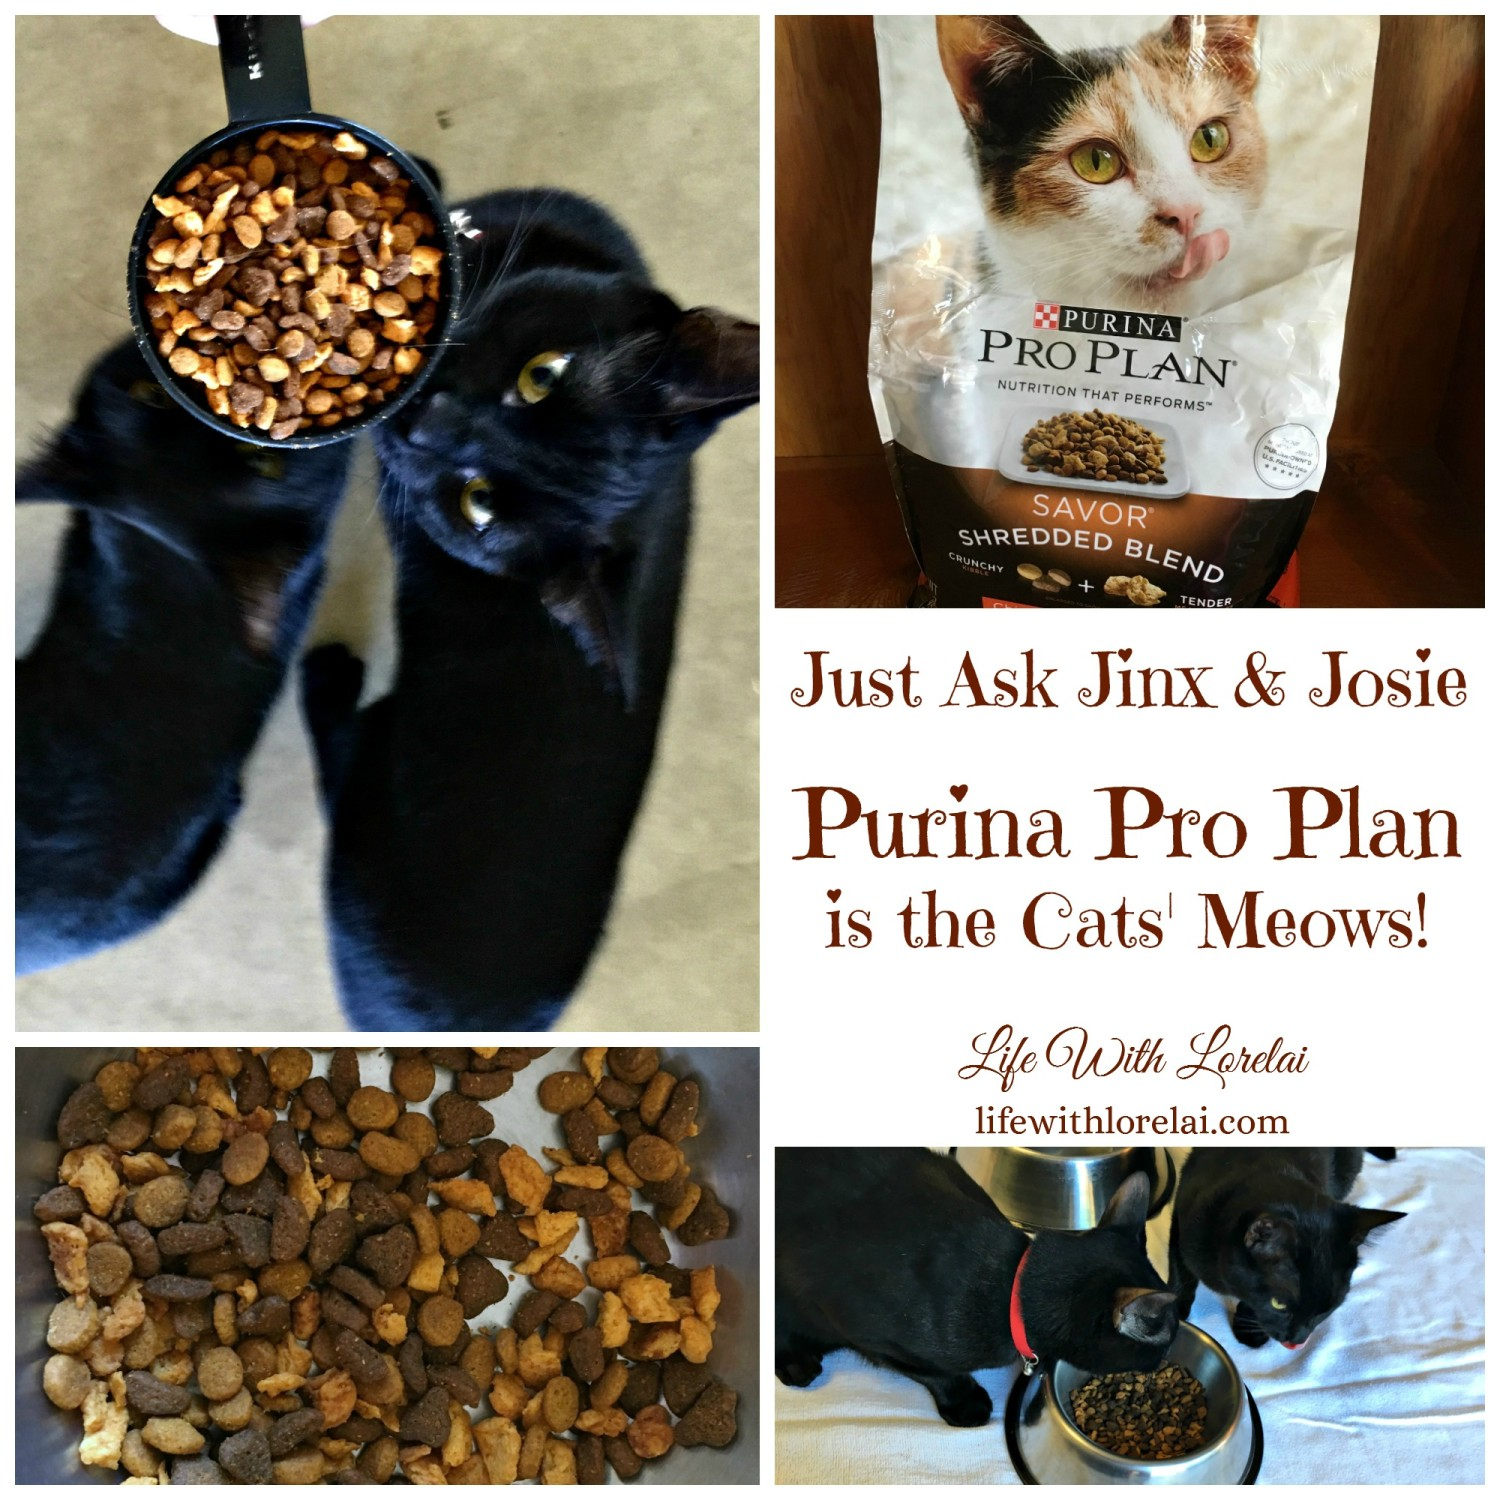 Purina Pro Plan Is The Cats' Meows - Life With Lorelai - #SavorCatReaction